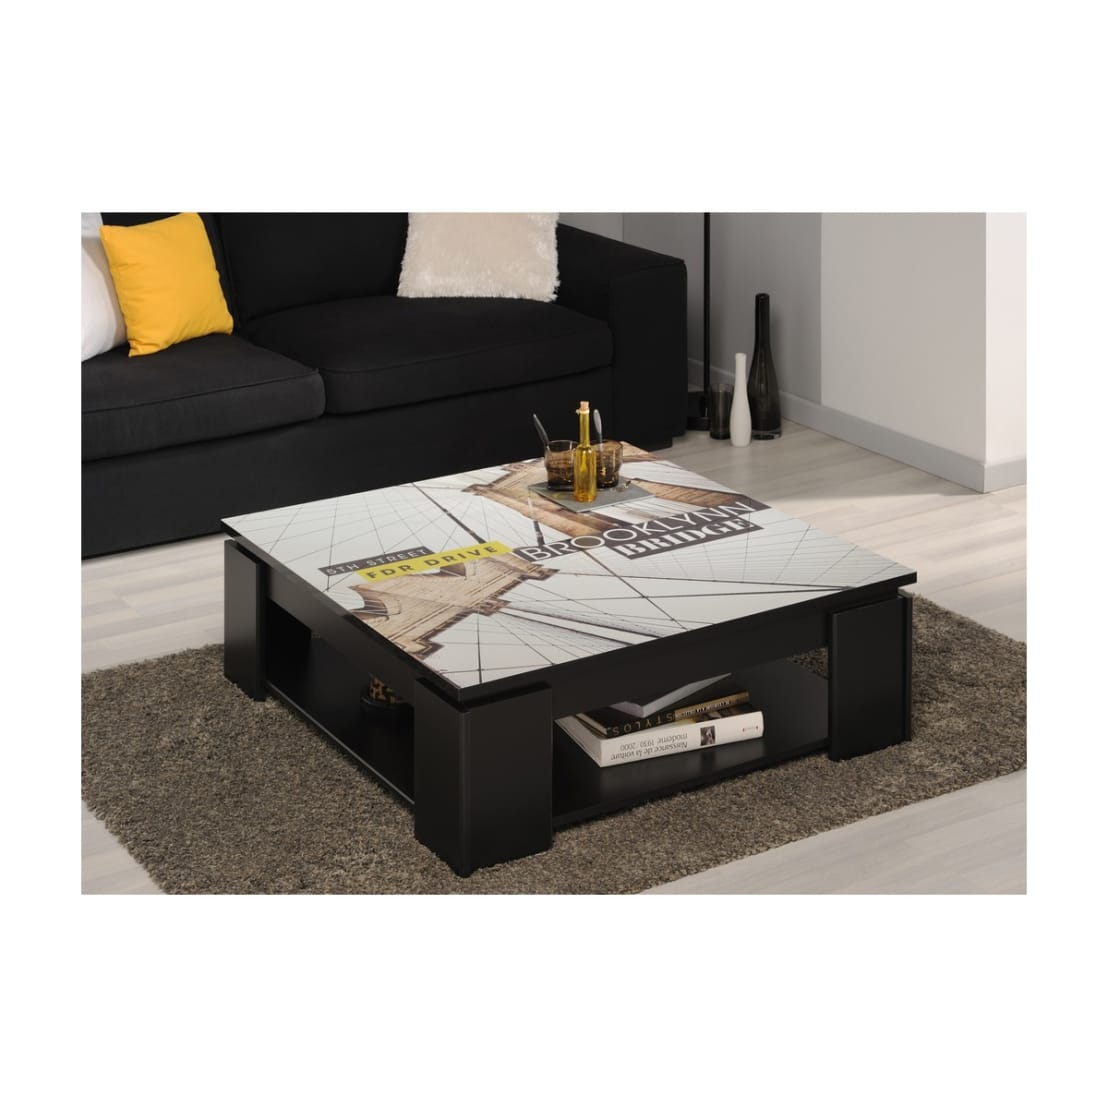 table basse imprim e brooklyn par lastmeubles homify. Black Bedroom Furniture Sets. Home Design Ideas